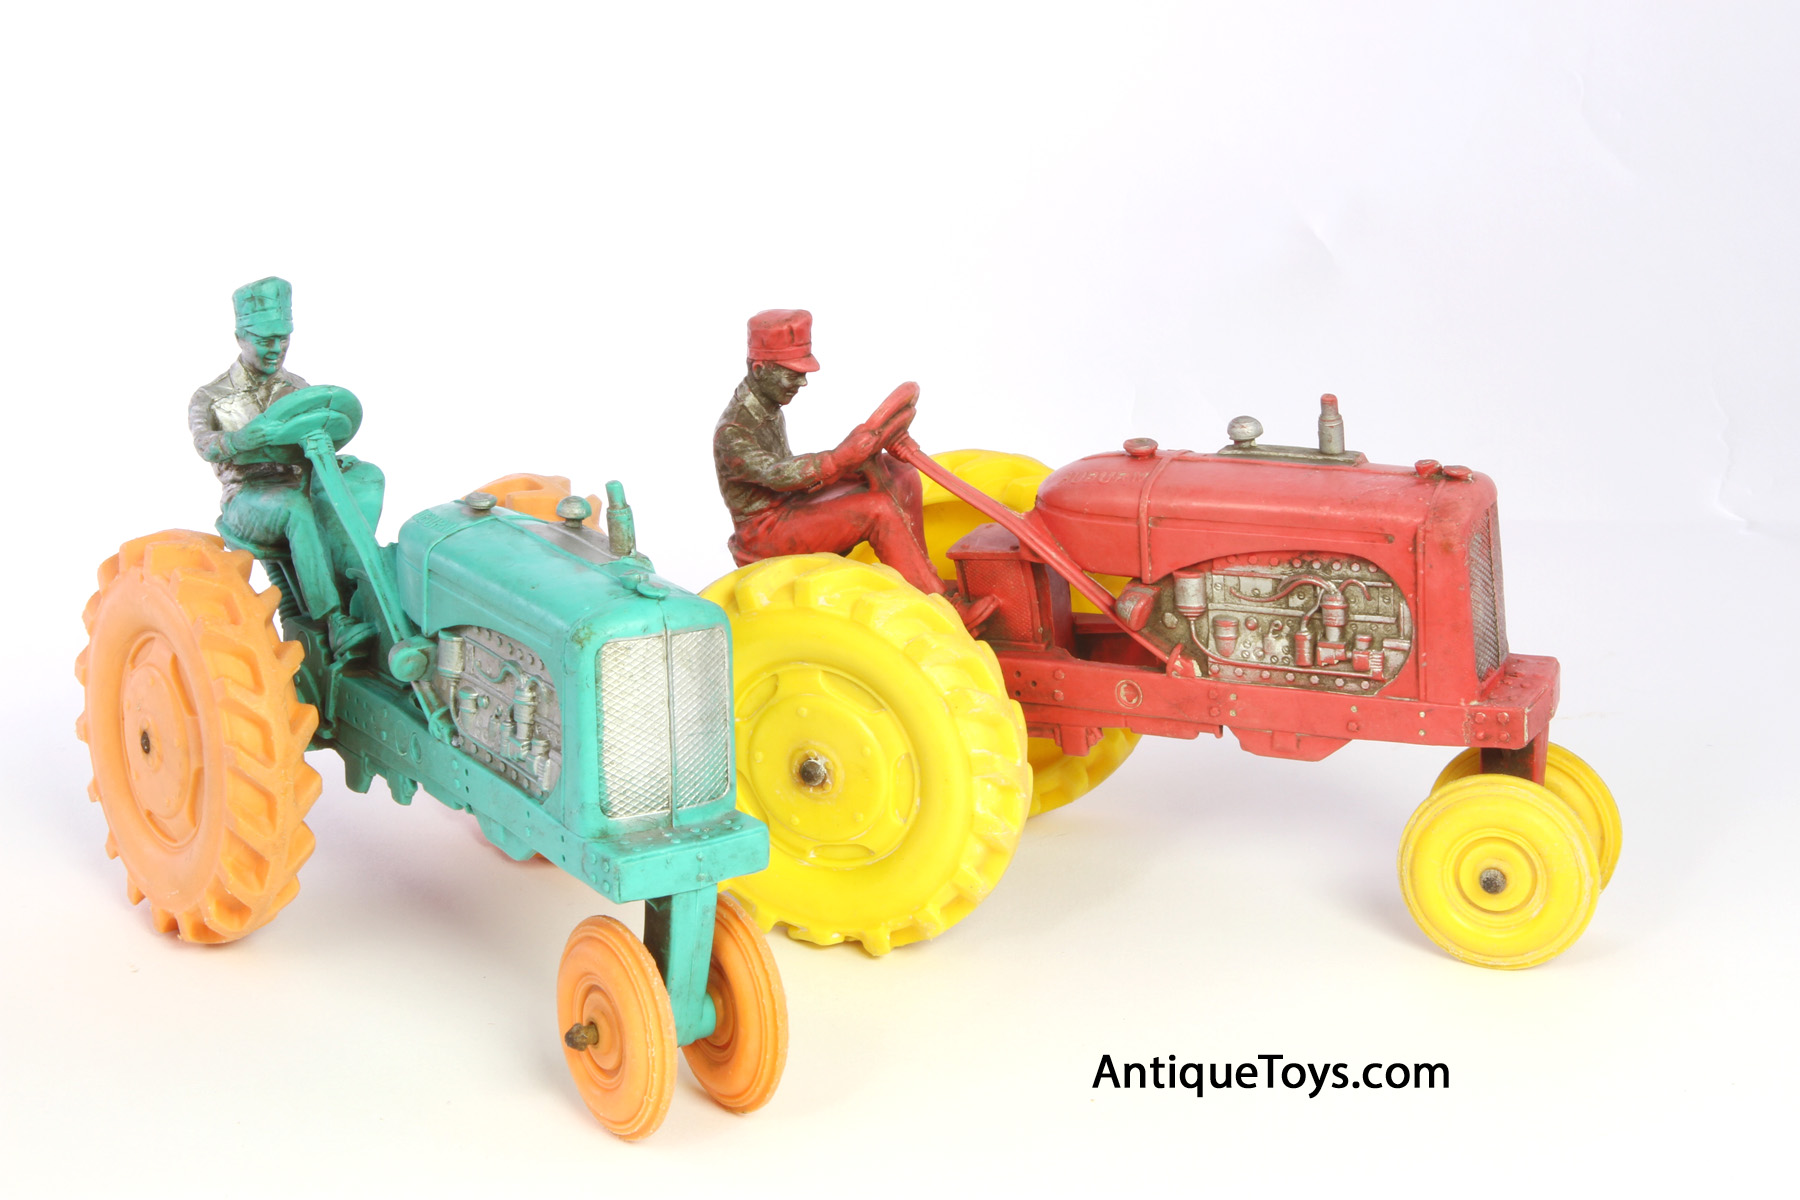 Trat Er Toy : Rubber toy tractors by auburn sold antique toys for sale